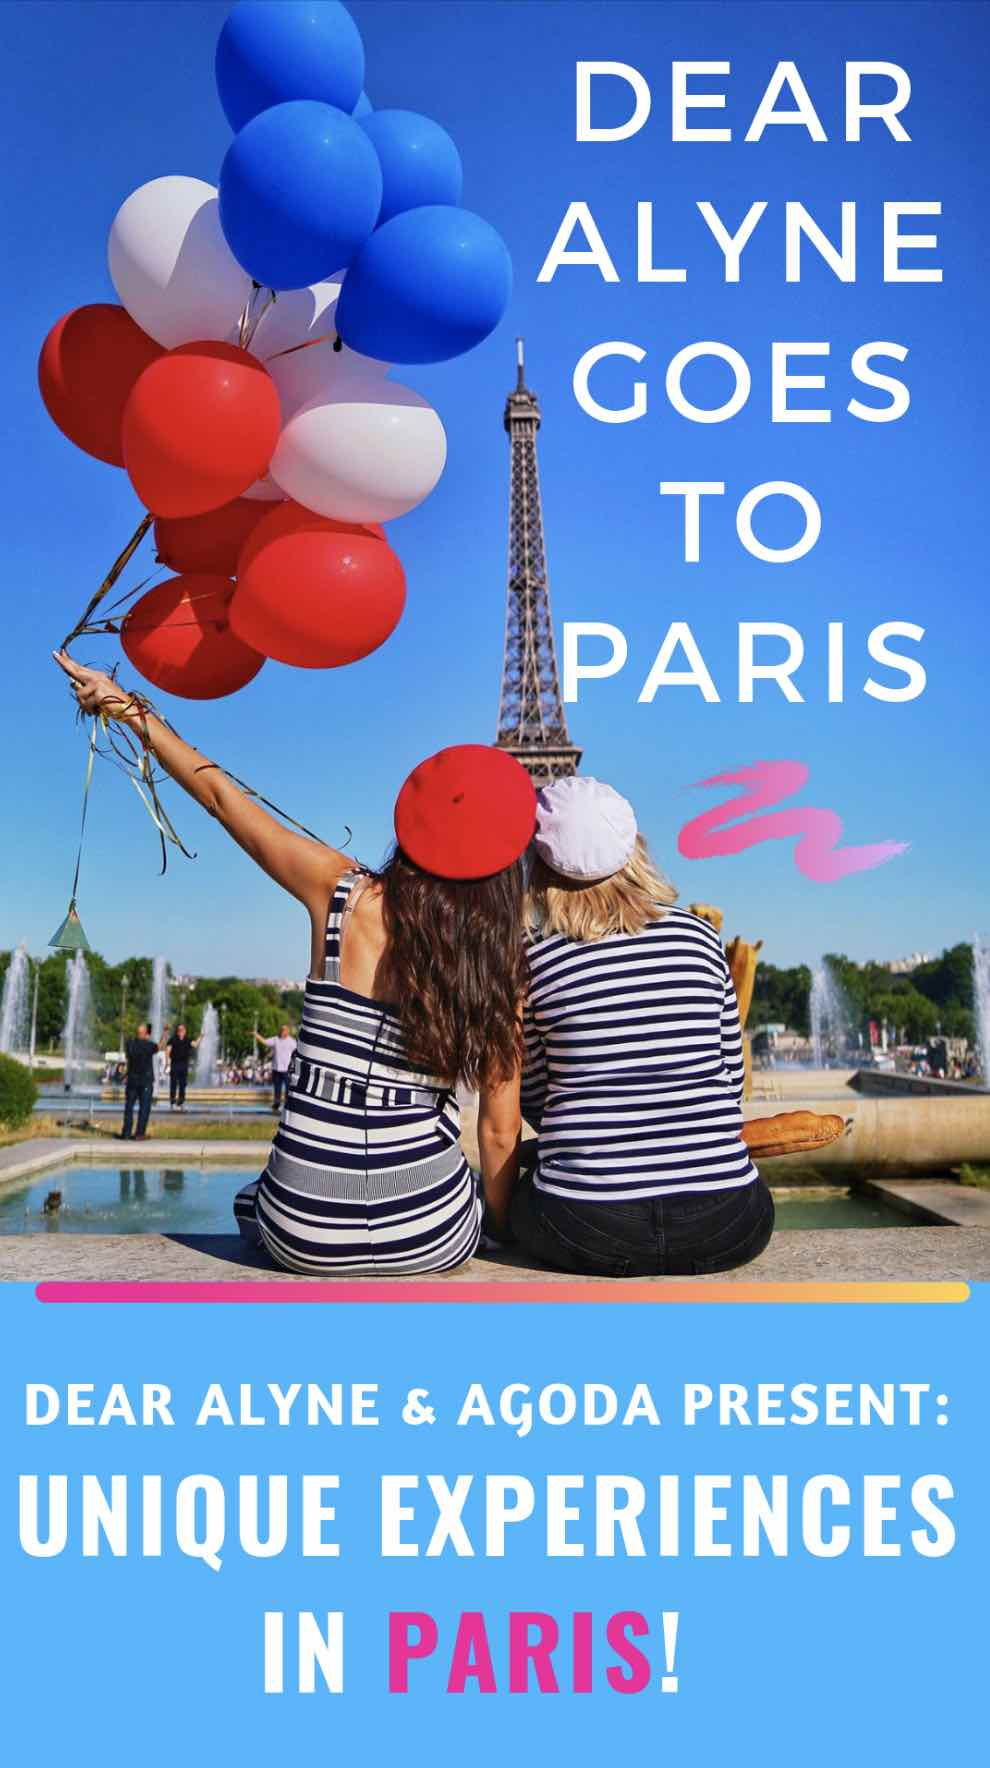 8 unusual experience to do in Paris